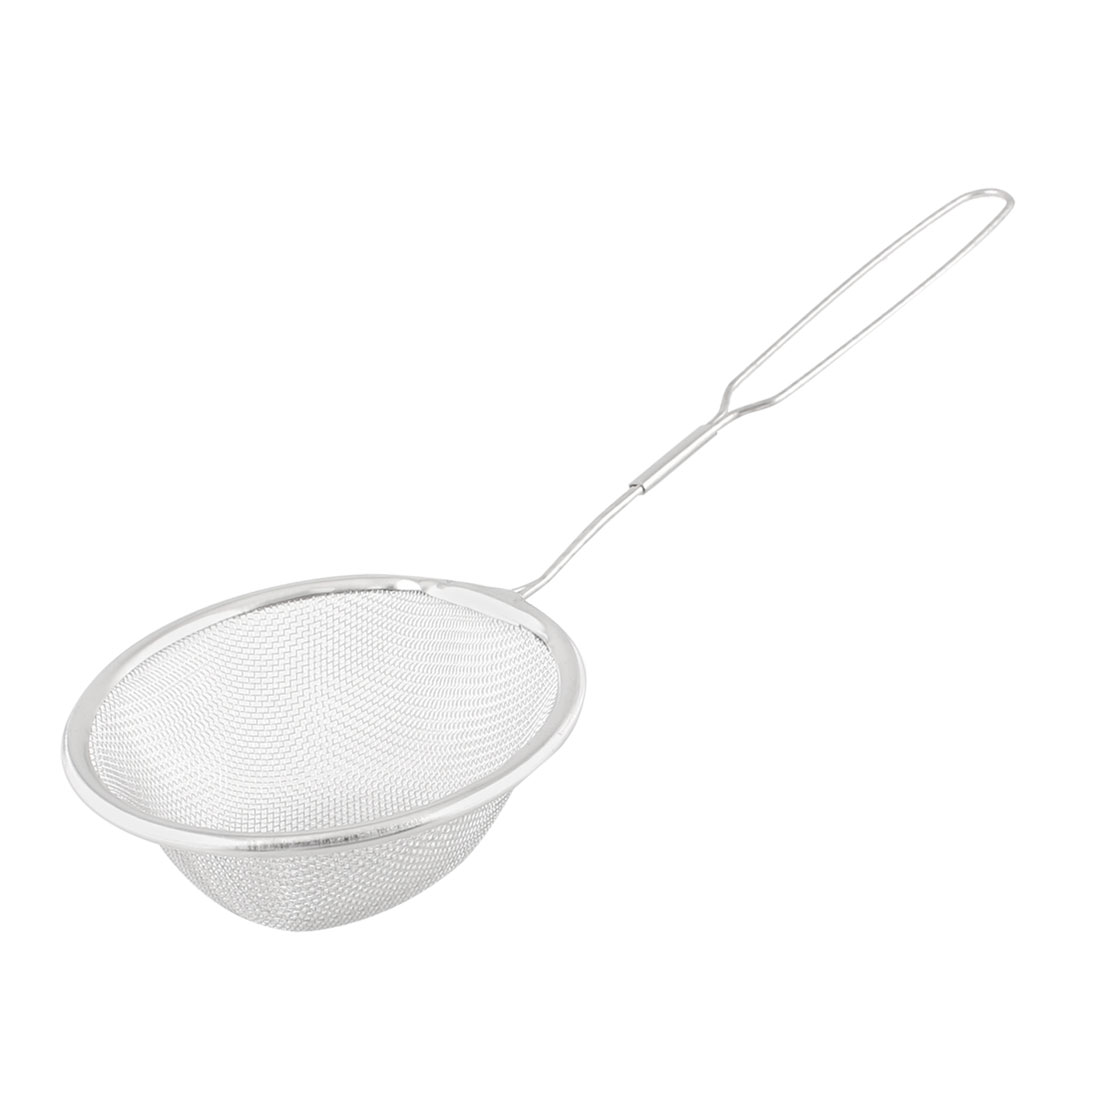 Kitchen Tool 8.5cm Diameter Stainless Steel Wire Mesh Ladle Spoon